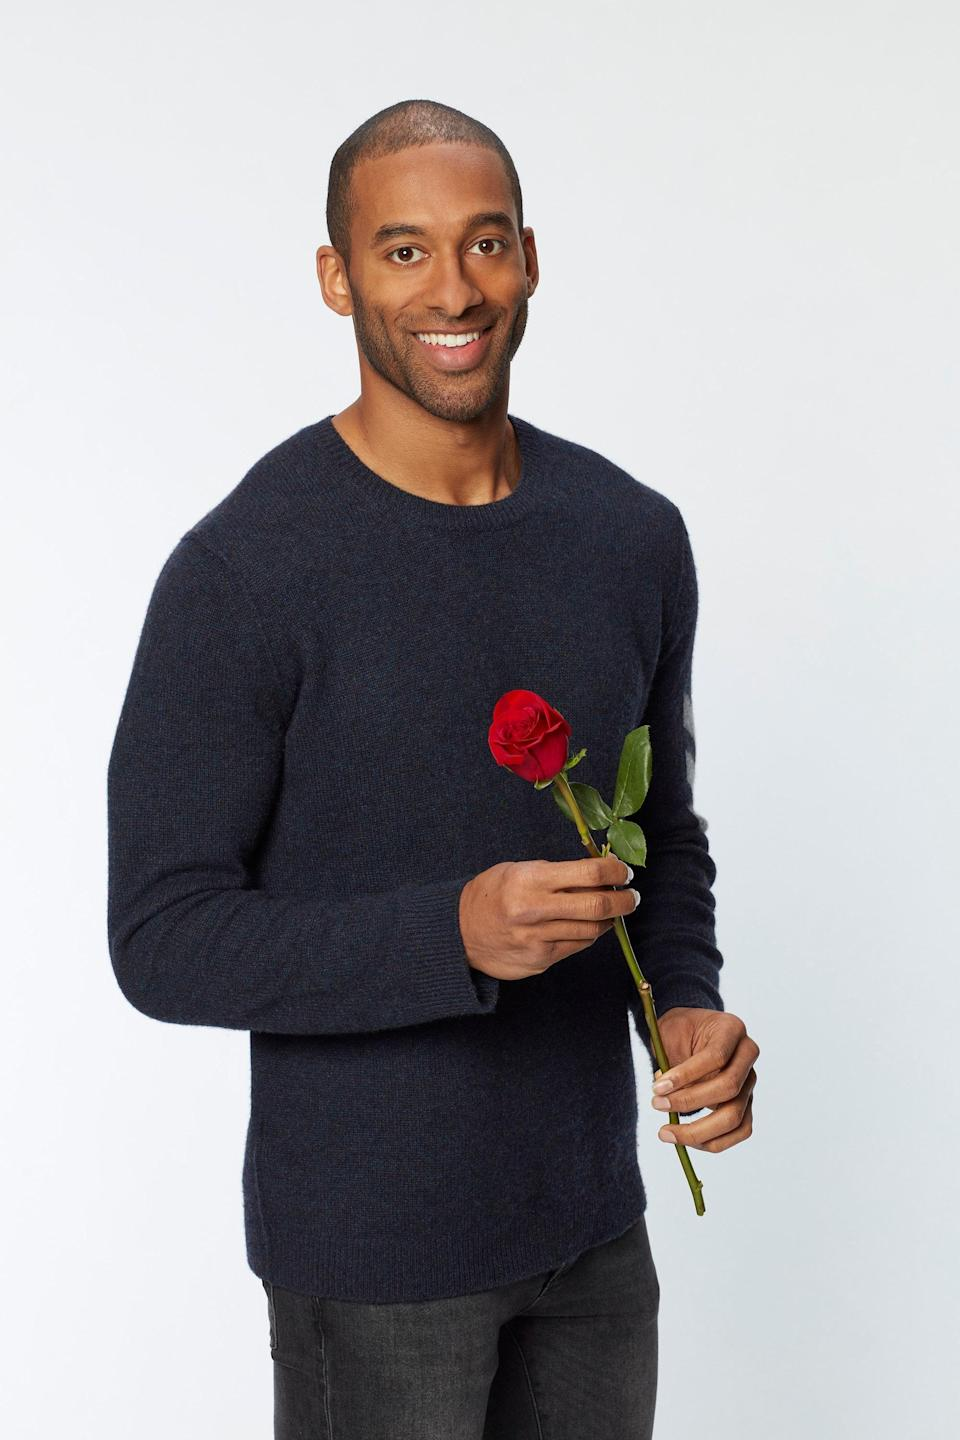 """<p>Matt James's historic <em>Bachelor</em> season kicks off in early January. <a href=""""https://www.glamour.com/story/the-bachelor-everything-we-know-about-season-25-with-matt-james?mbid=synd_yahoo_rss"""" rel=""""nofollow noopener"""" target=""""_blank"""" data-ylk=""""slk:Click here"""" class=""""link rapid-noclick-resp"""">Click here</a> to see everything we know about it so far. </p> <p><em>8 p.m. ET on ABC</em> </p>"""